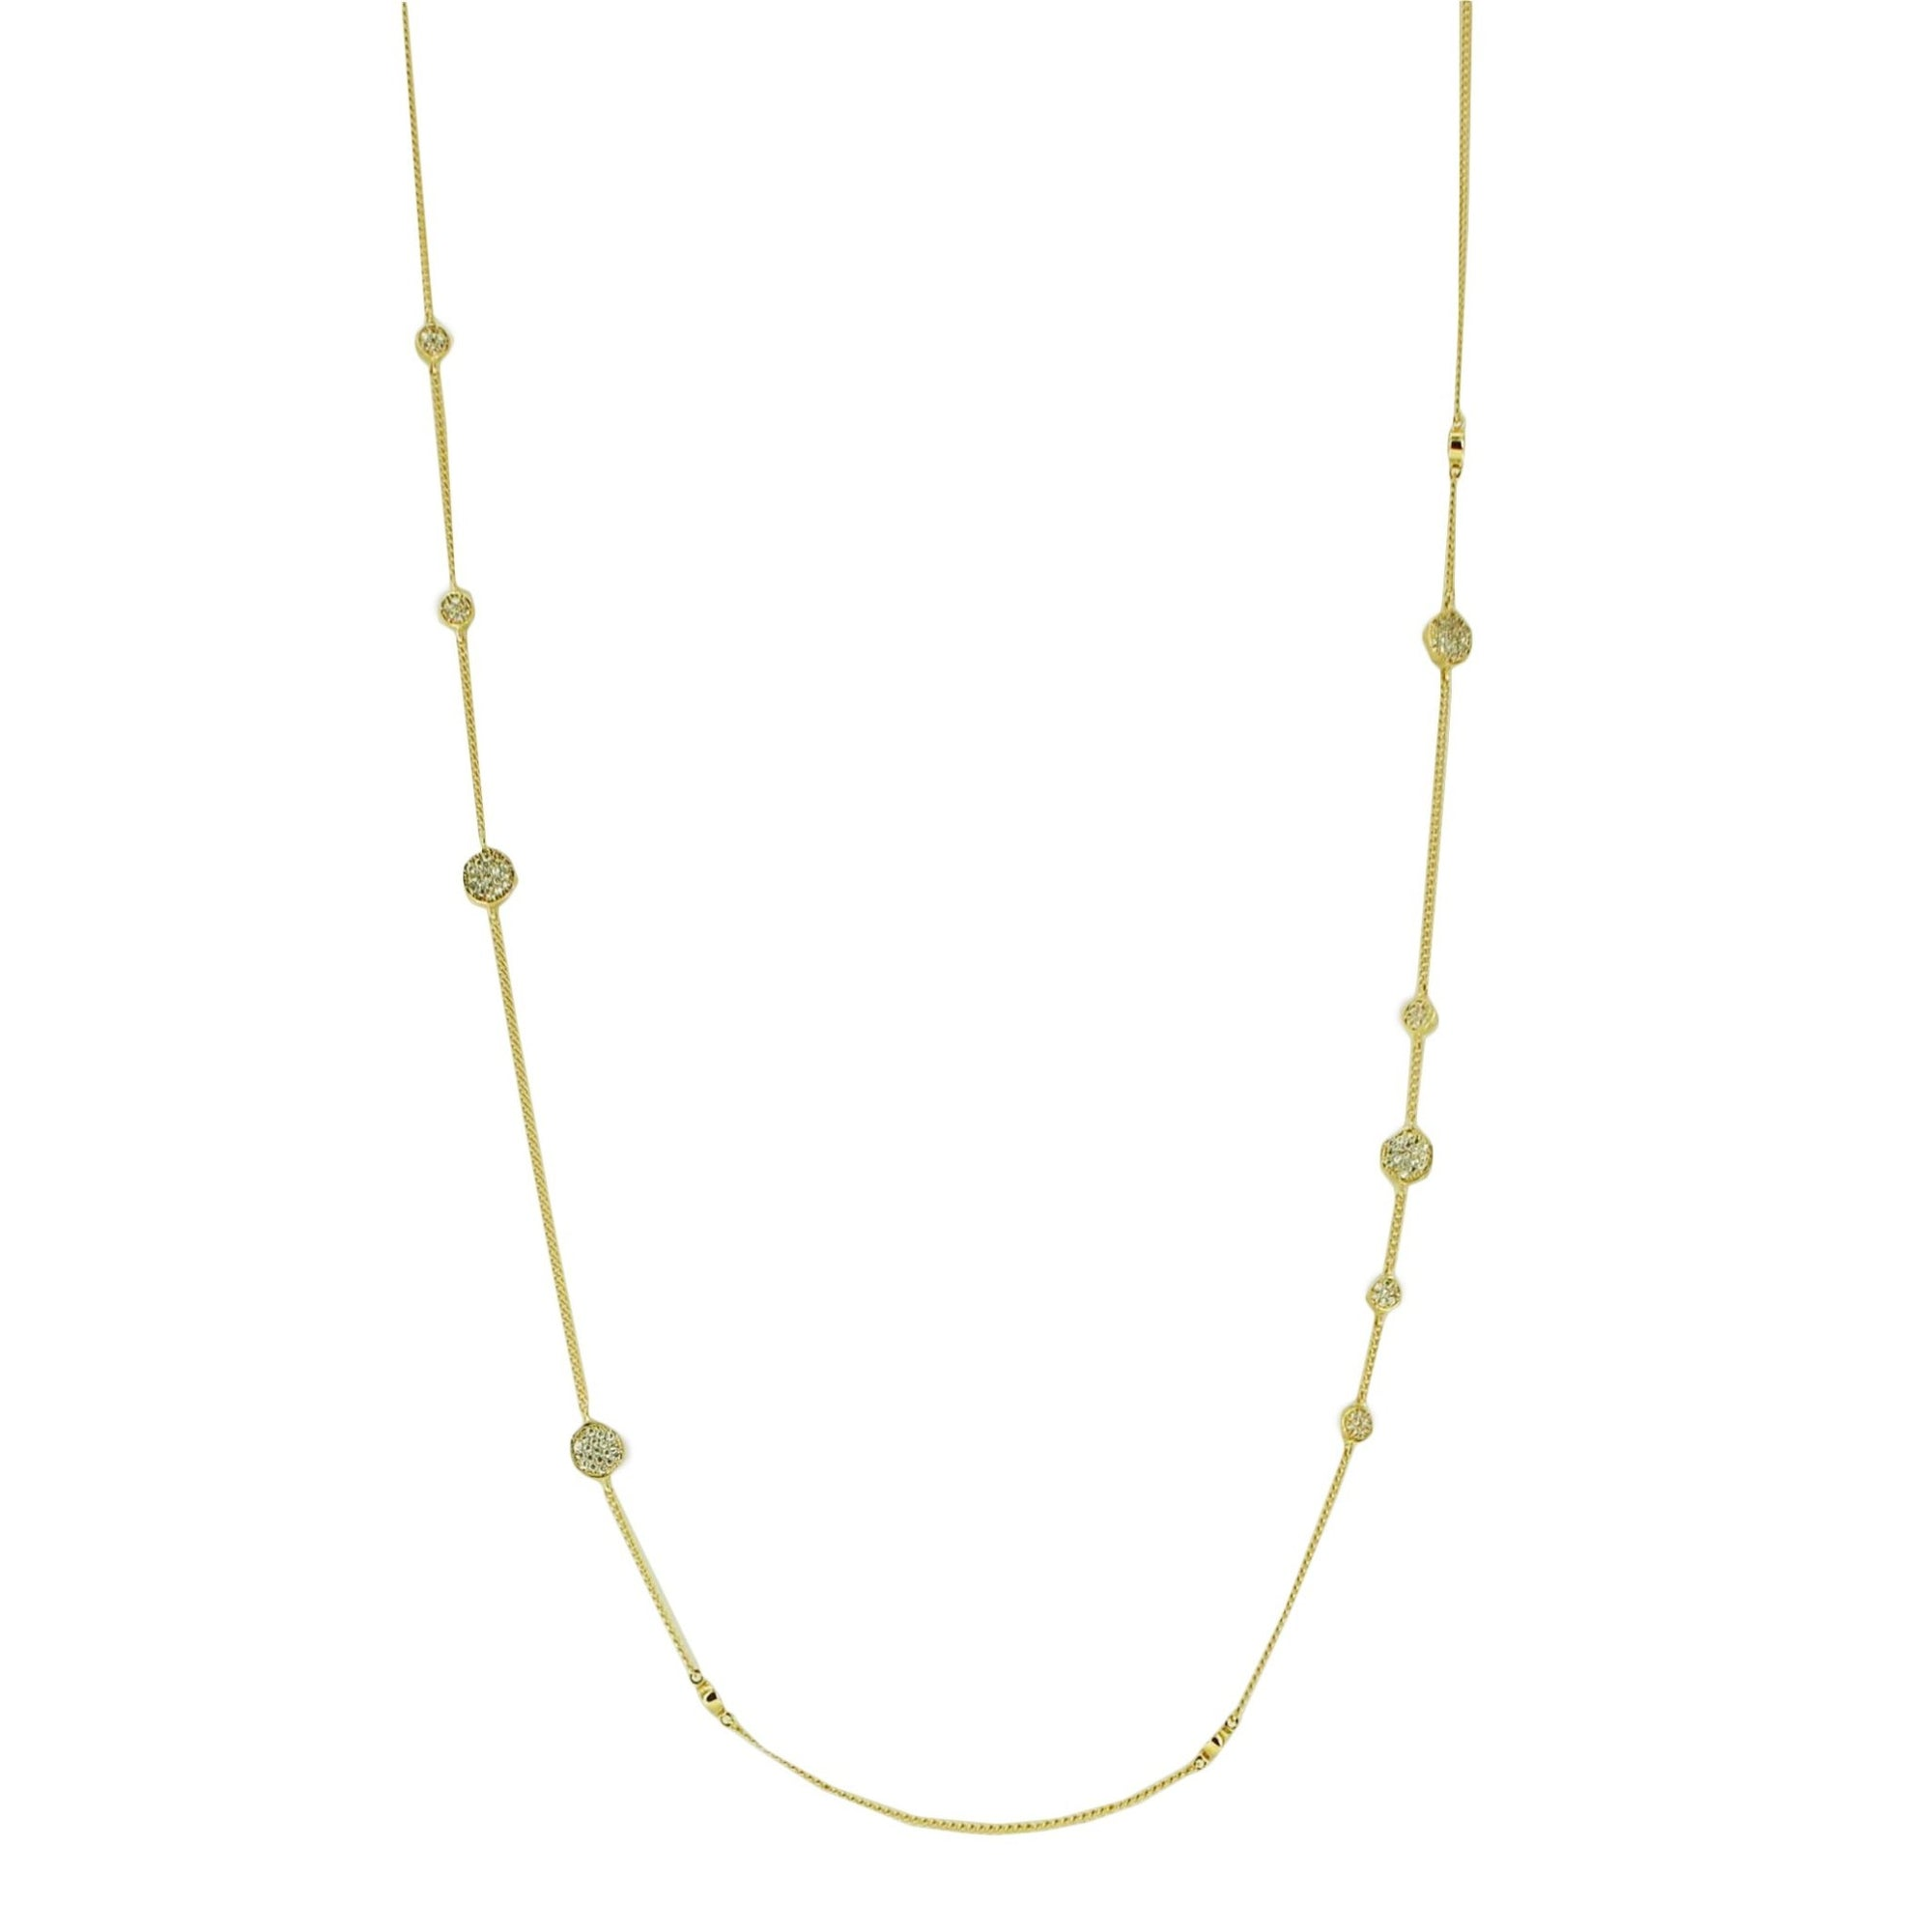 LONG XO LOVE CHOKER NECKLACE - CUBIC ZIRCONIA & GOLD - SO PRETTY CARA COTTER